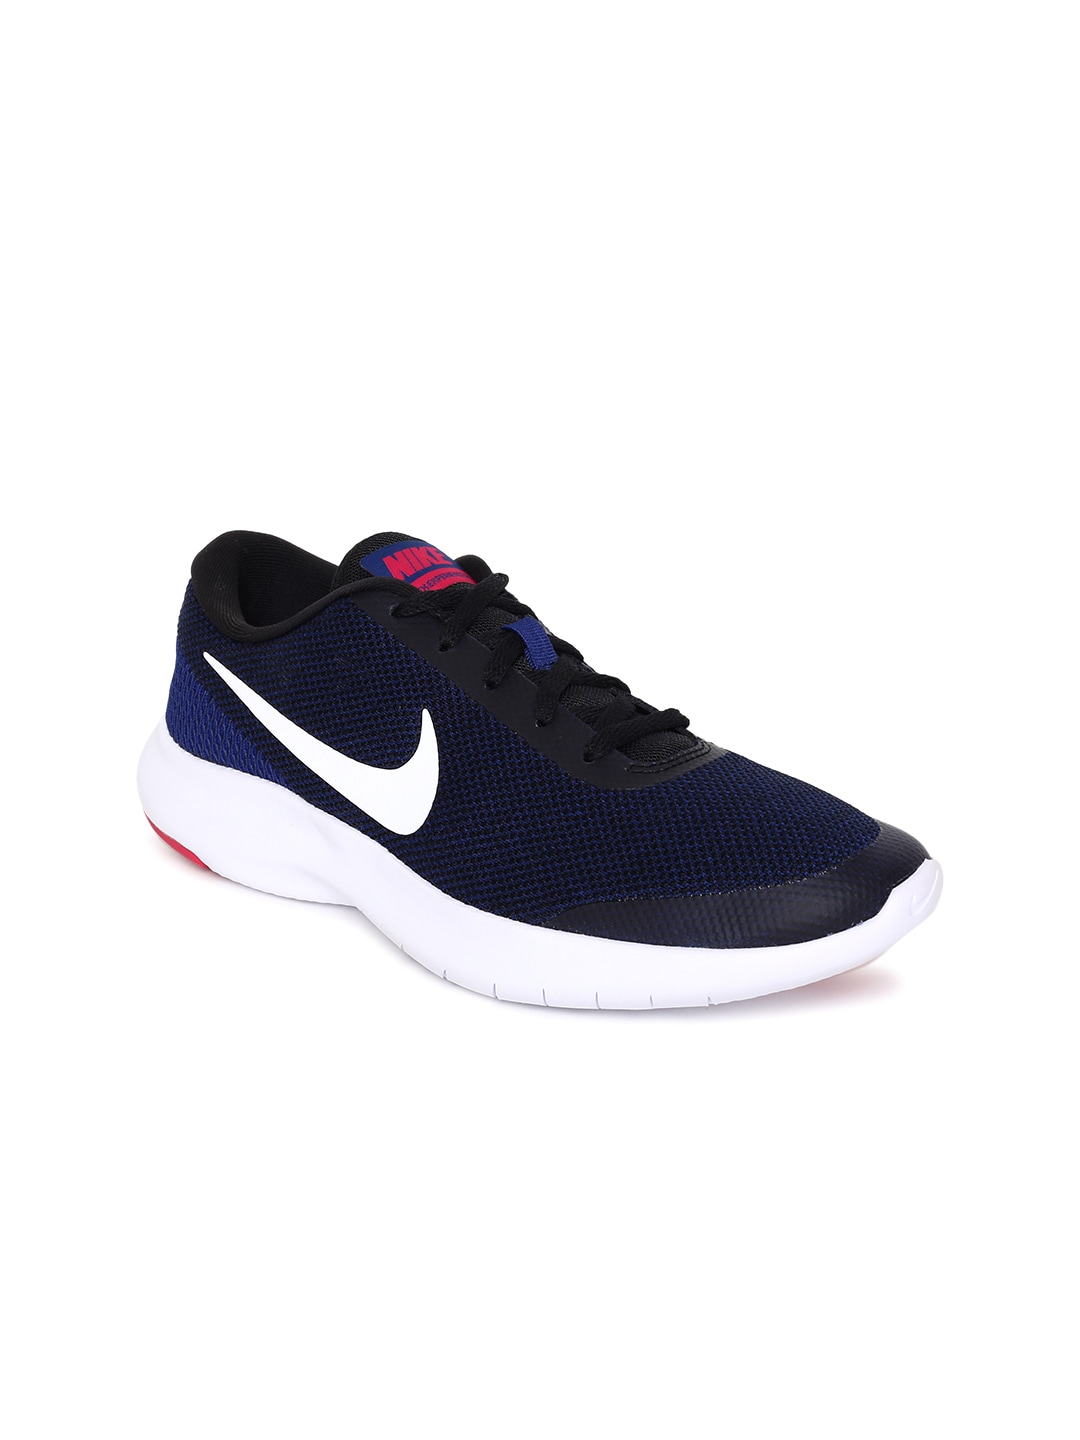 057048a312f974 Nike Running Shoes - Buy Nike Running Shoes Online